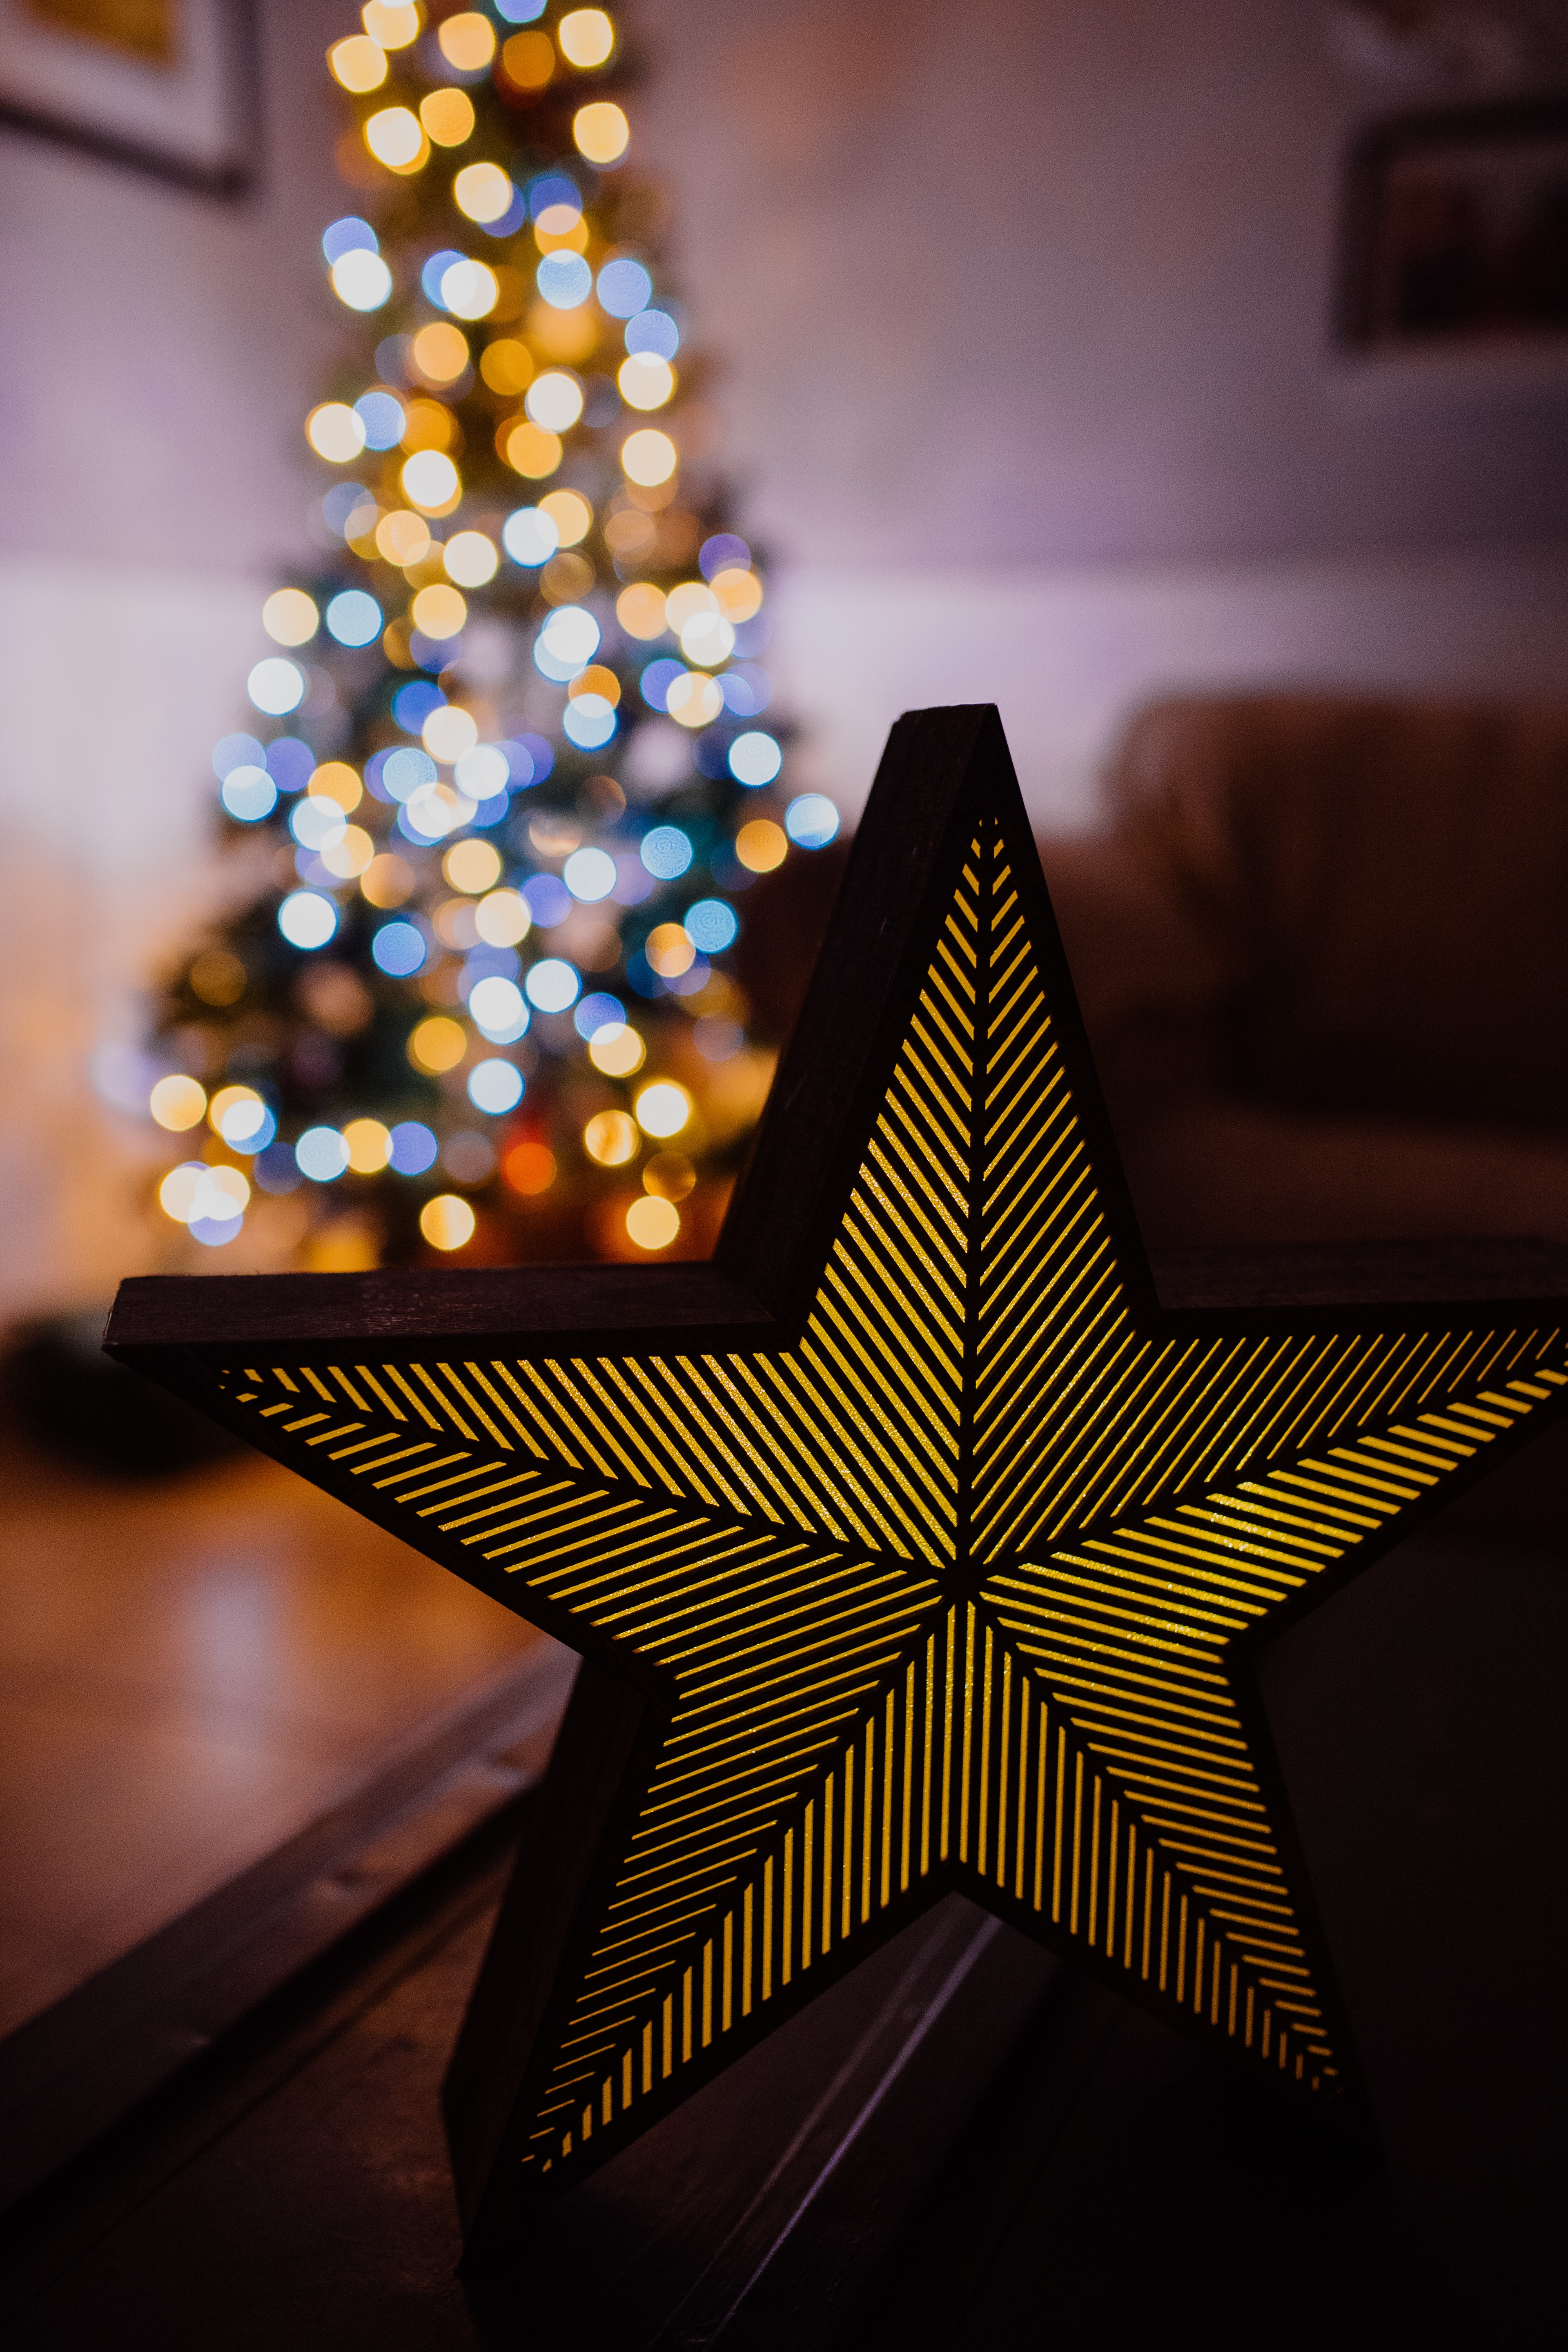 gold and black star near lit Christmas tree